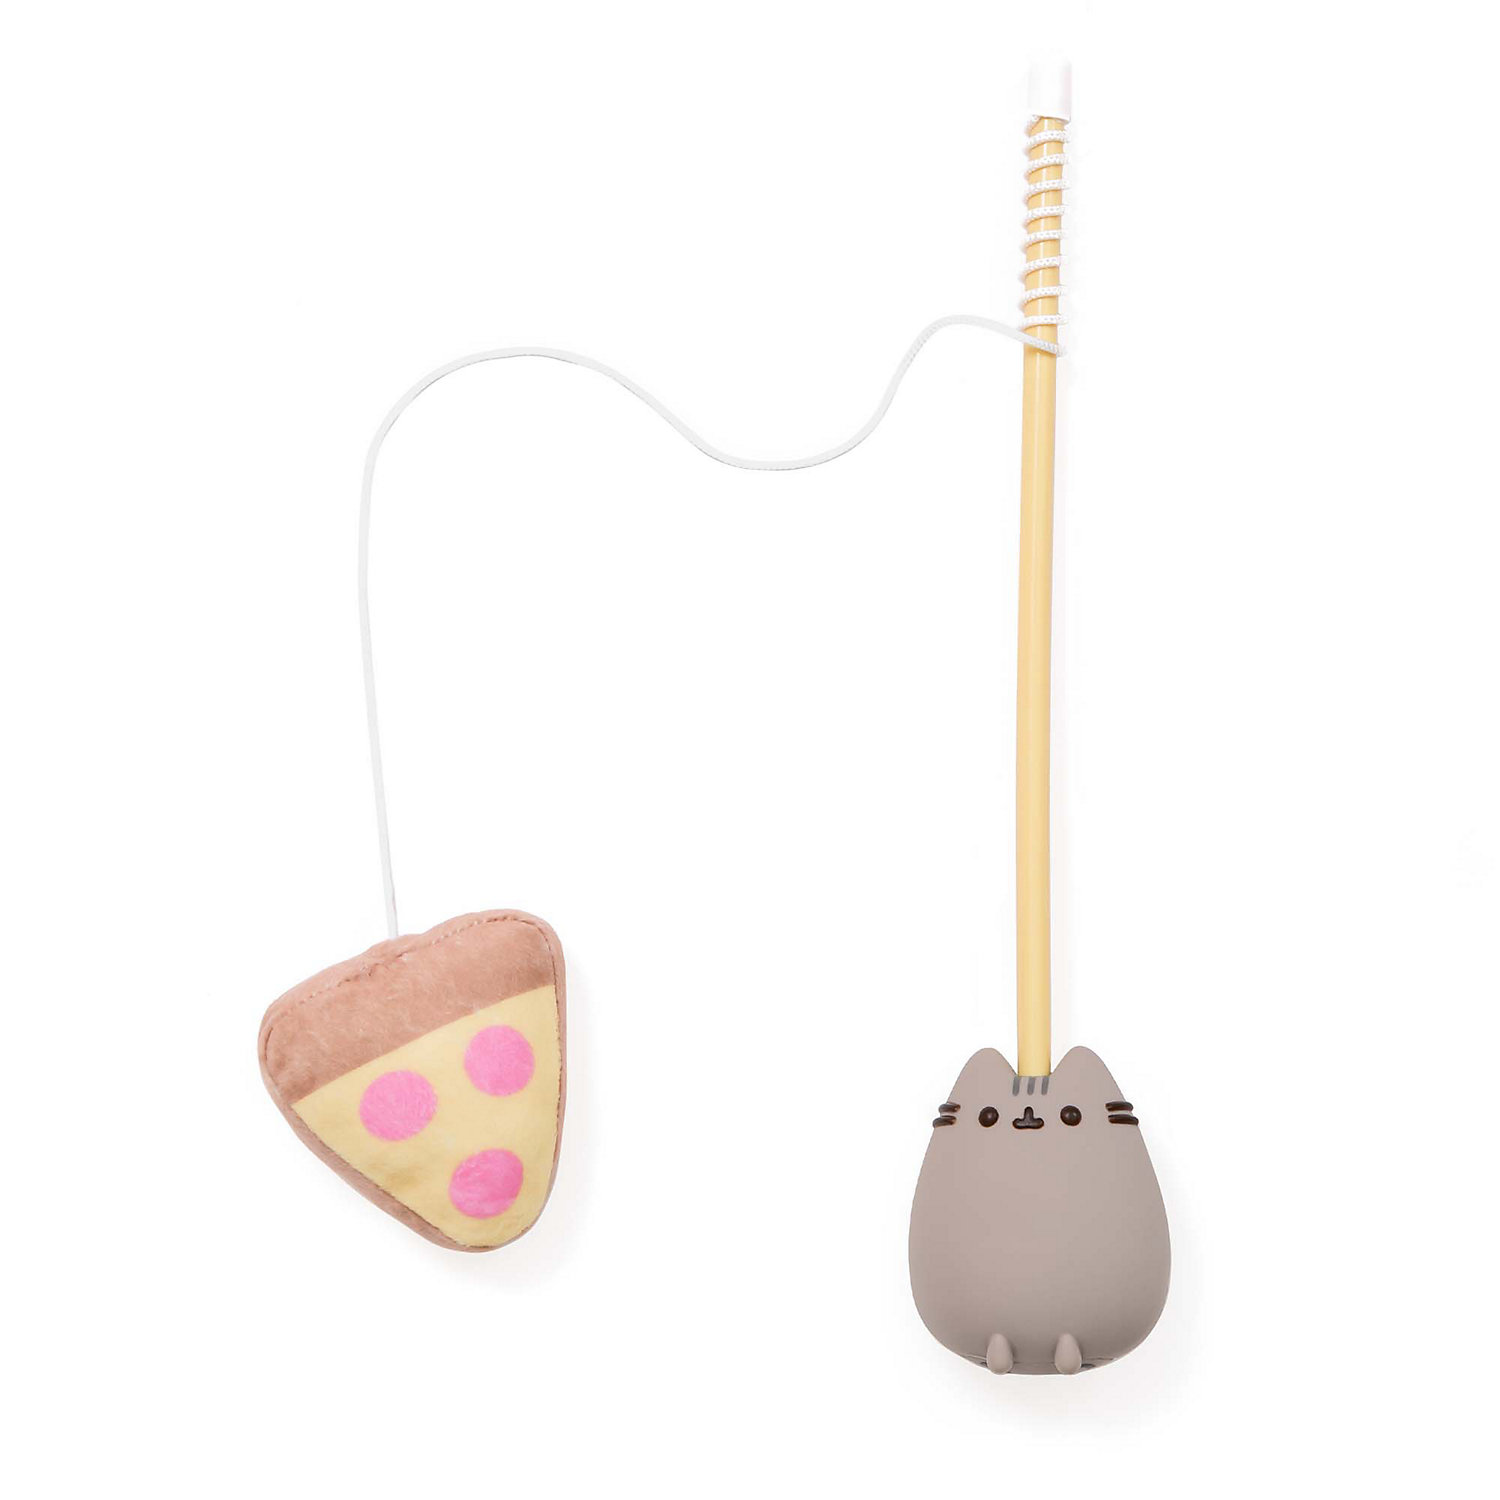 Pusheen Pizza Cat Teaser Toy, One Size Fits All, Yellow